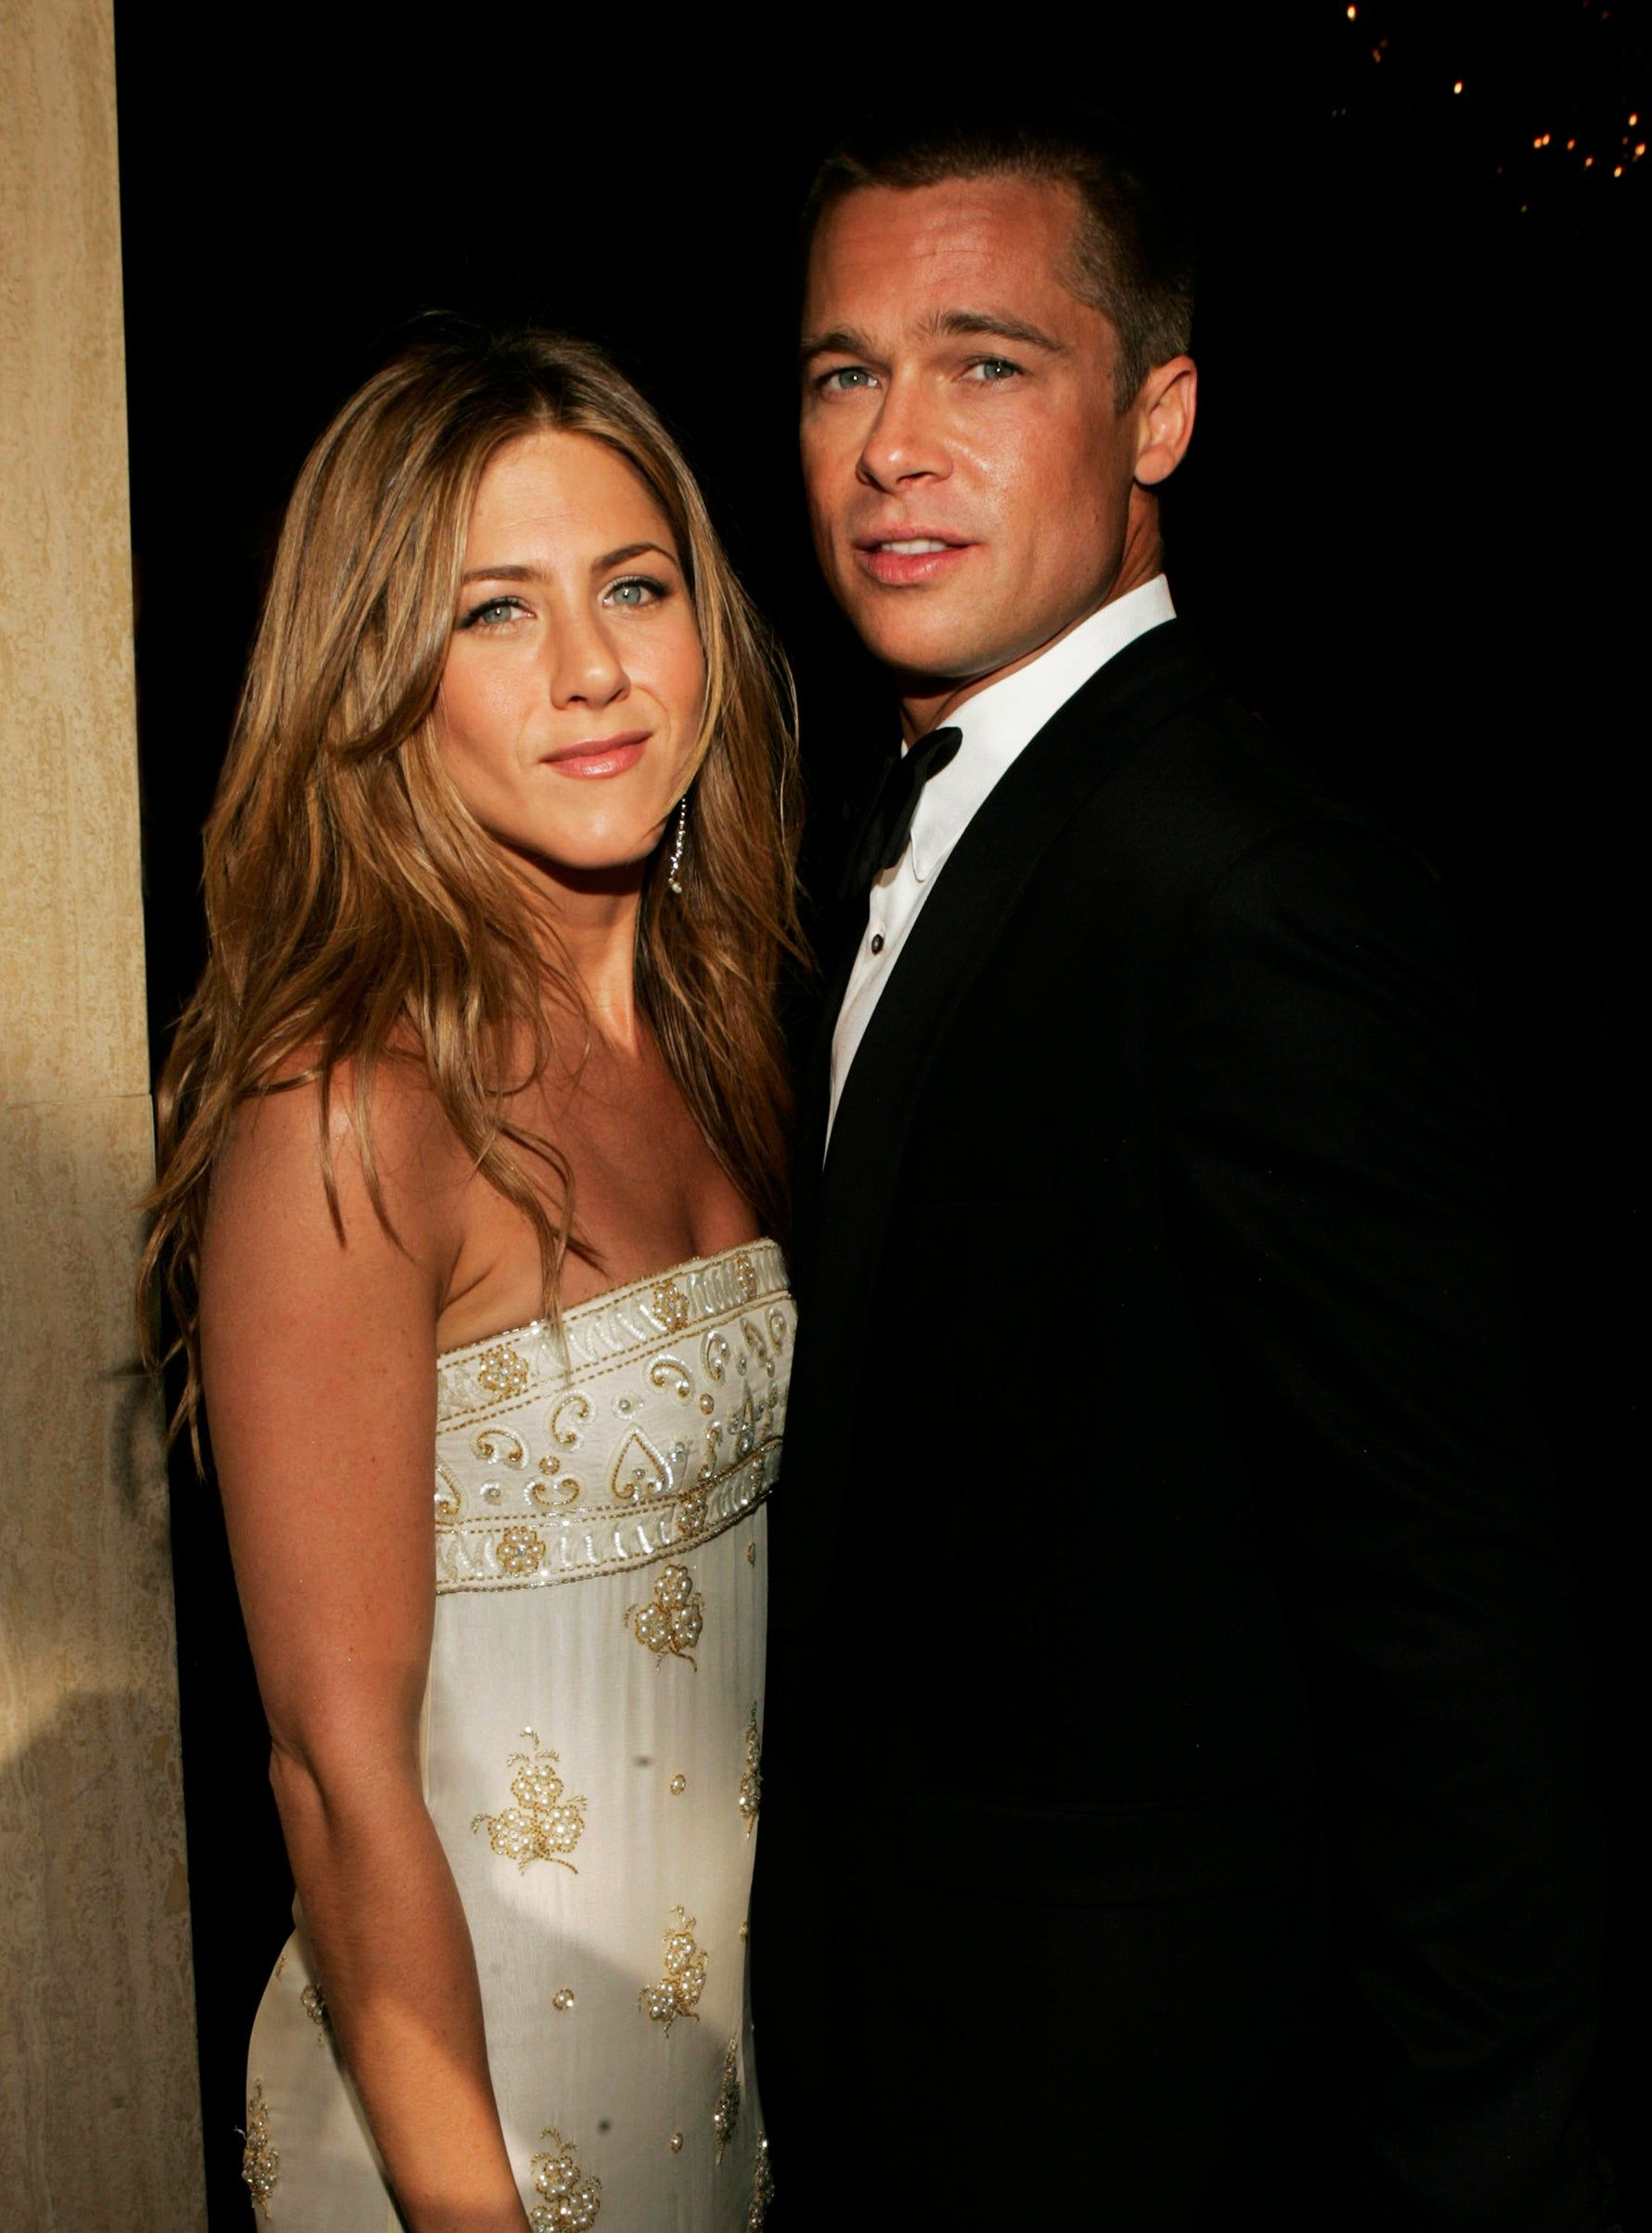 Brad Pitt Jennifer Aniston Celebrated The Holidays Together Brad Pitt And Jennifer Jennifer Aniston Photos Brad Pitt Jennifer Aniston